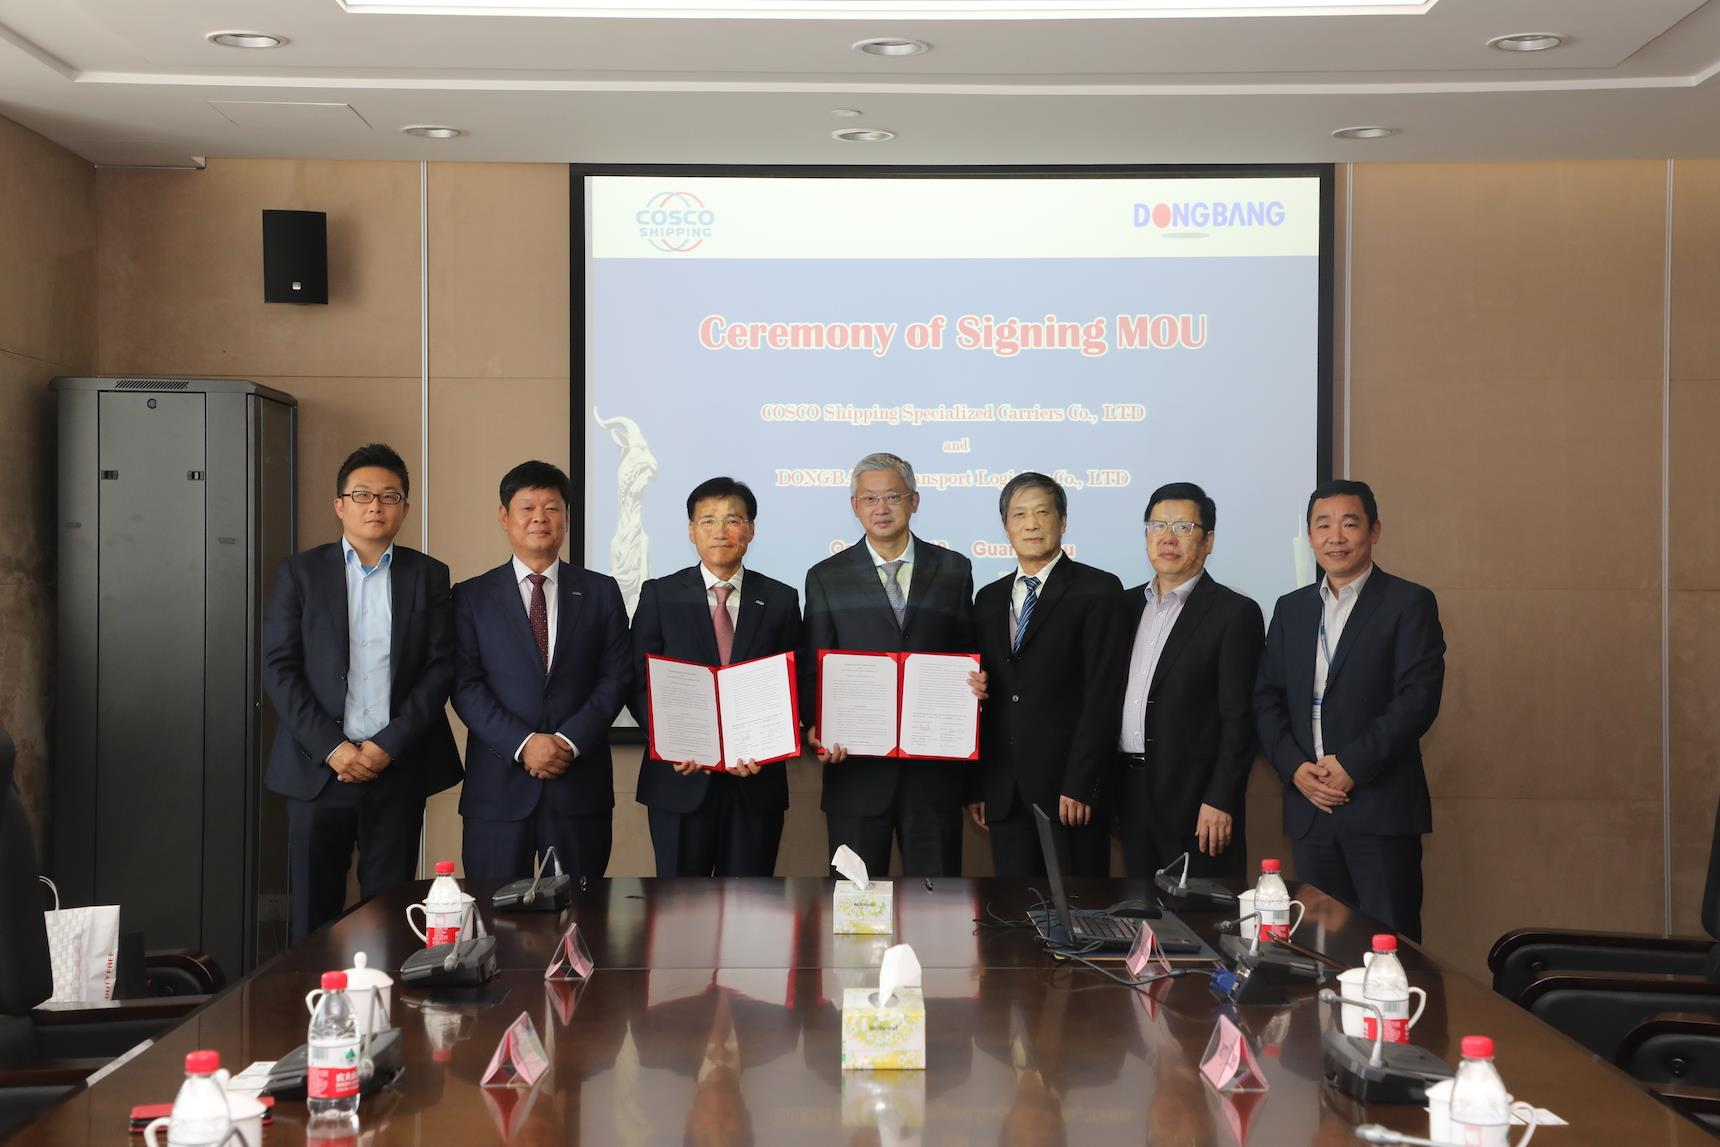 From left to right: Kris Bae, UK branch representative for Dongbang;  Woon Gun Jung, Dongbang's vice president; Kyung Min Seong, Dongbang president; Wei Chen, COSCO's president; Ya Chun Wu, vice president; Xiao Hong Qiu, general manager at COSCO; and COSCO's deputy general manager Wei Liu.